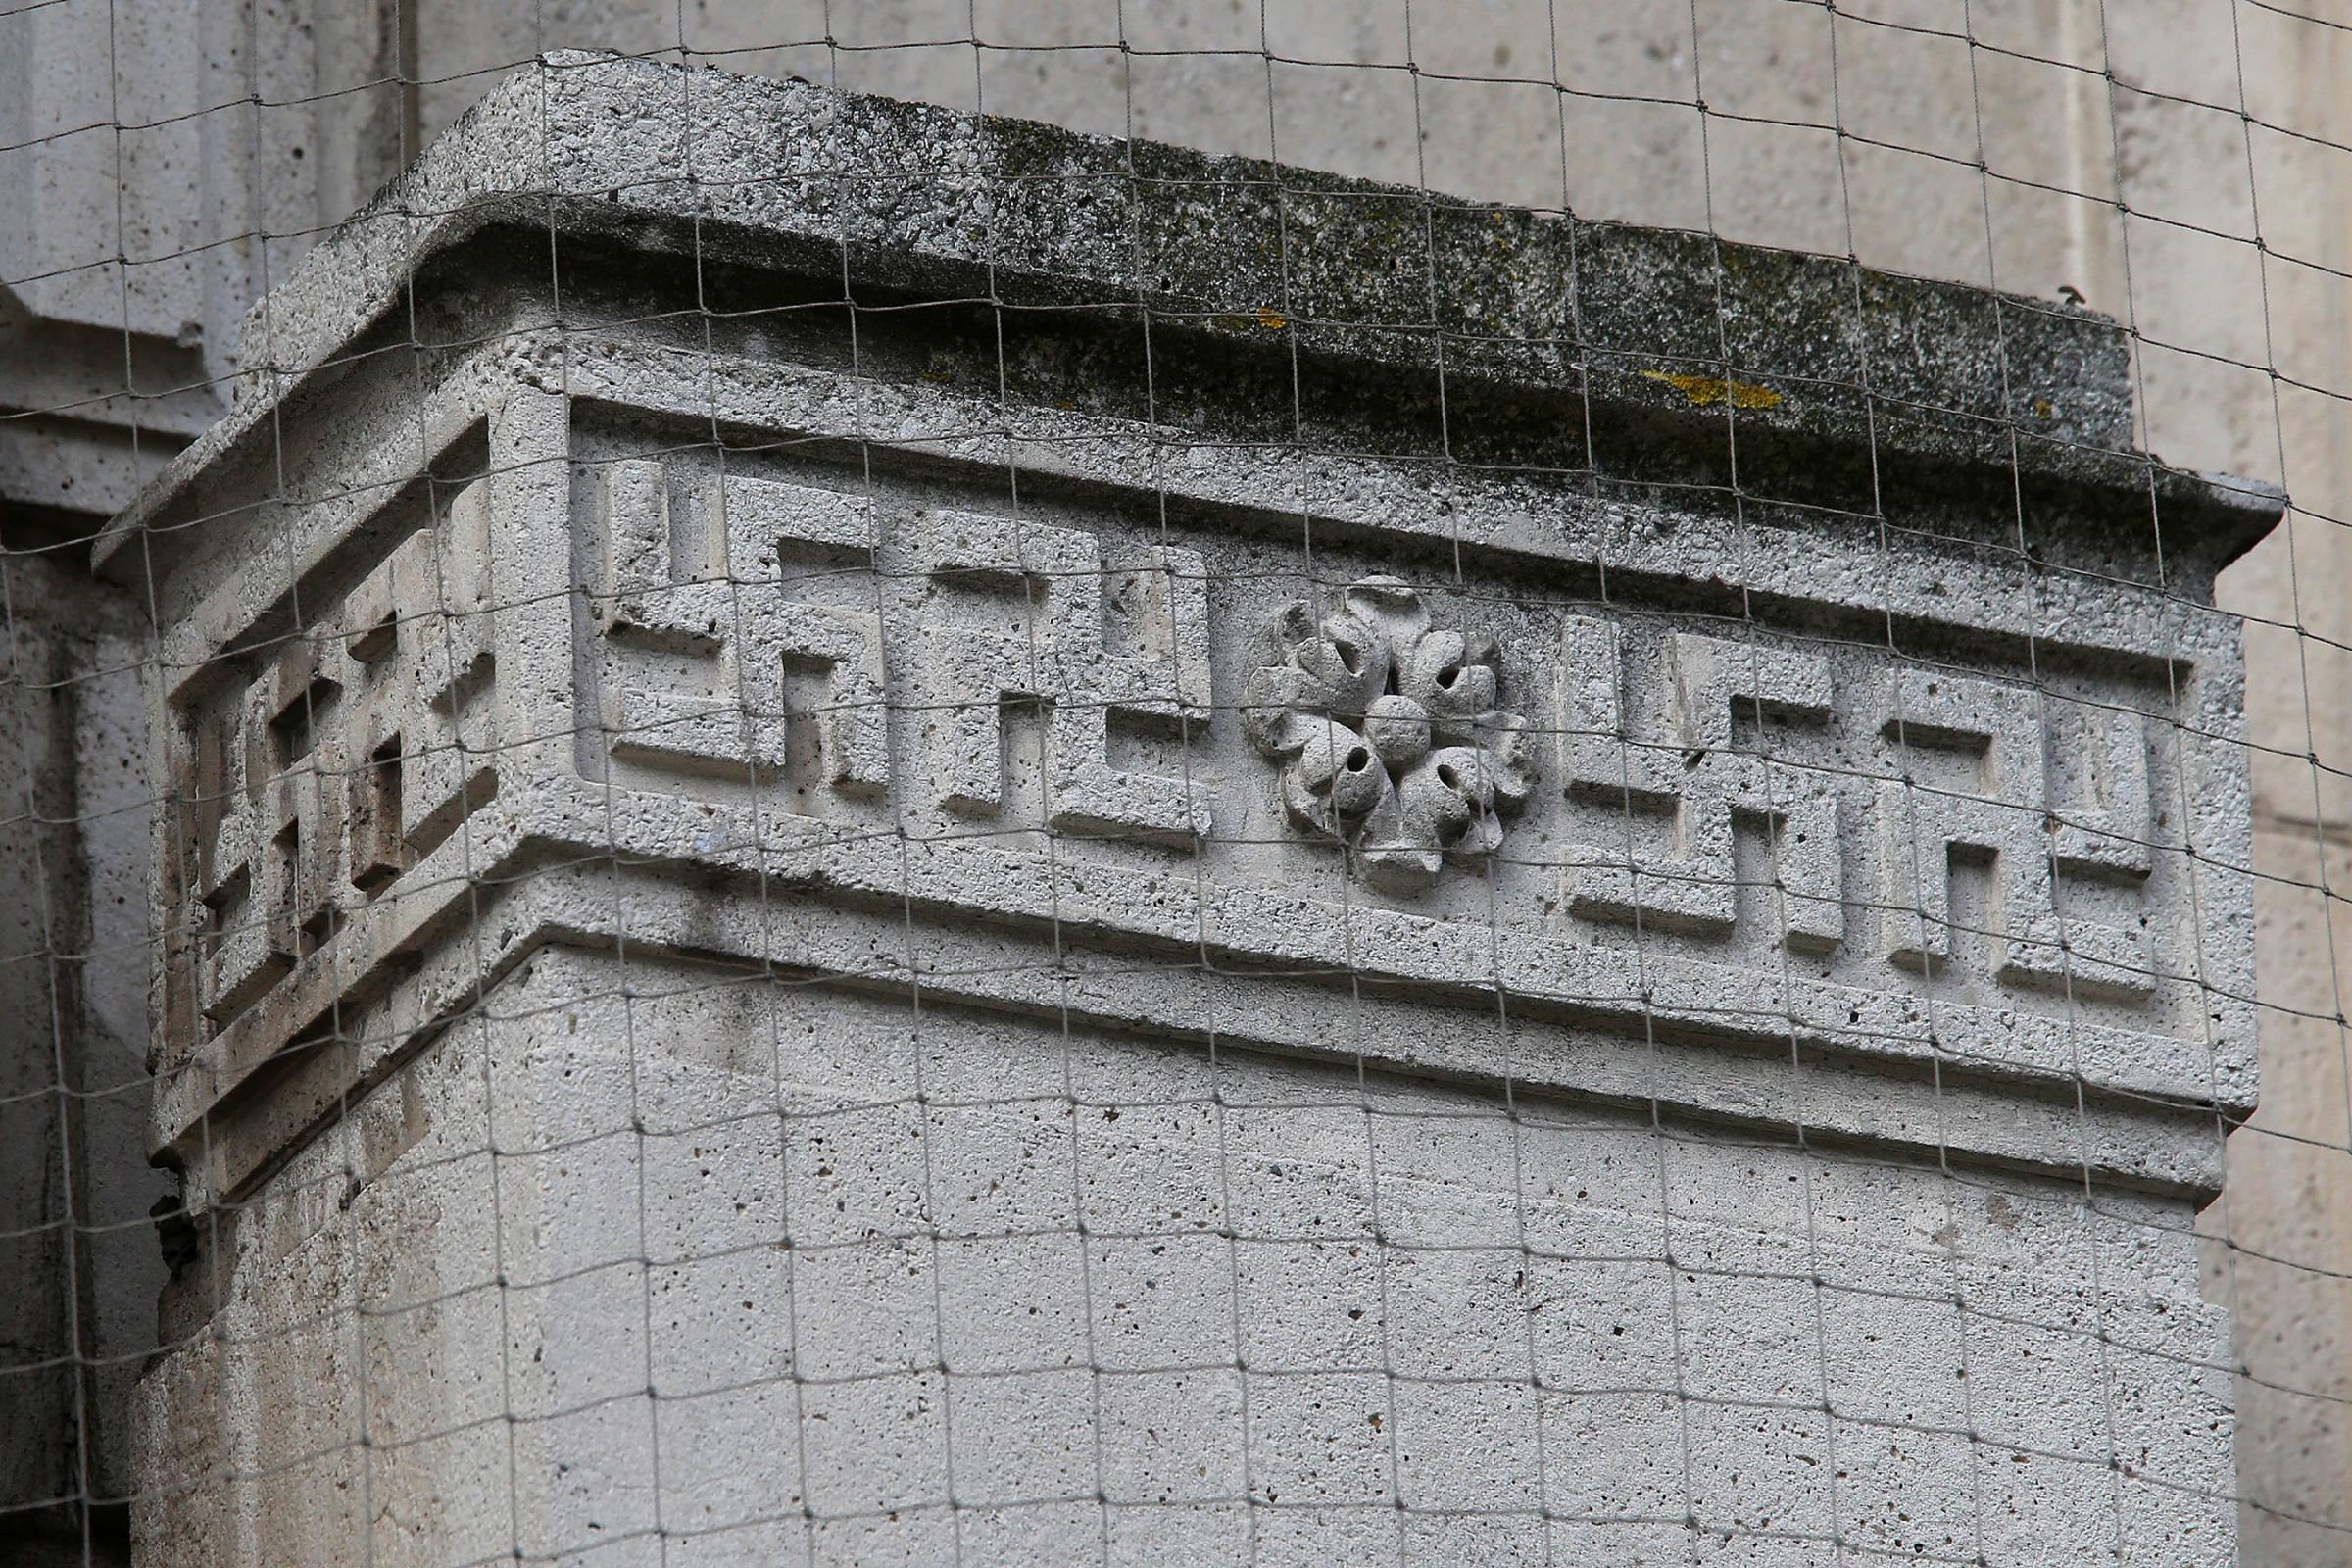 No plans to remove Swastikas from council building